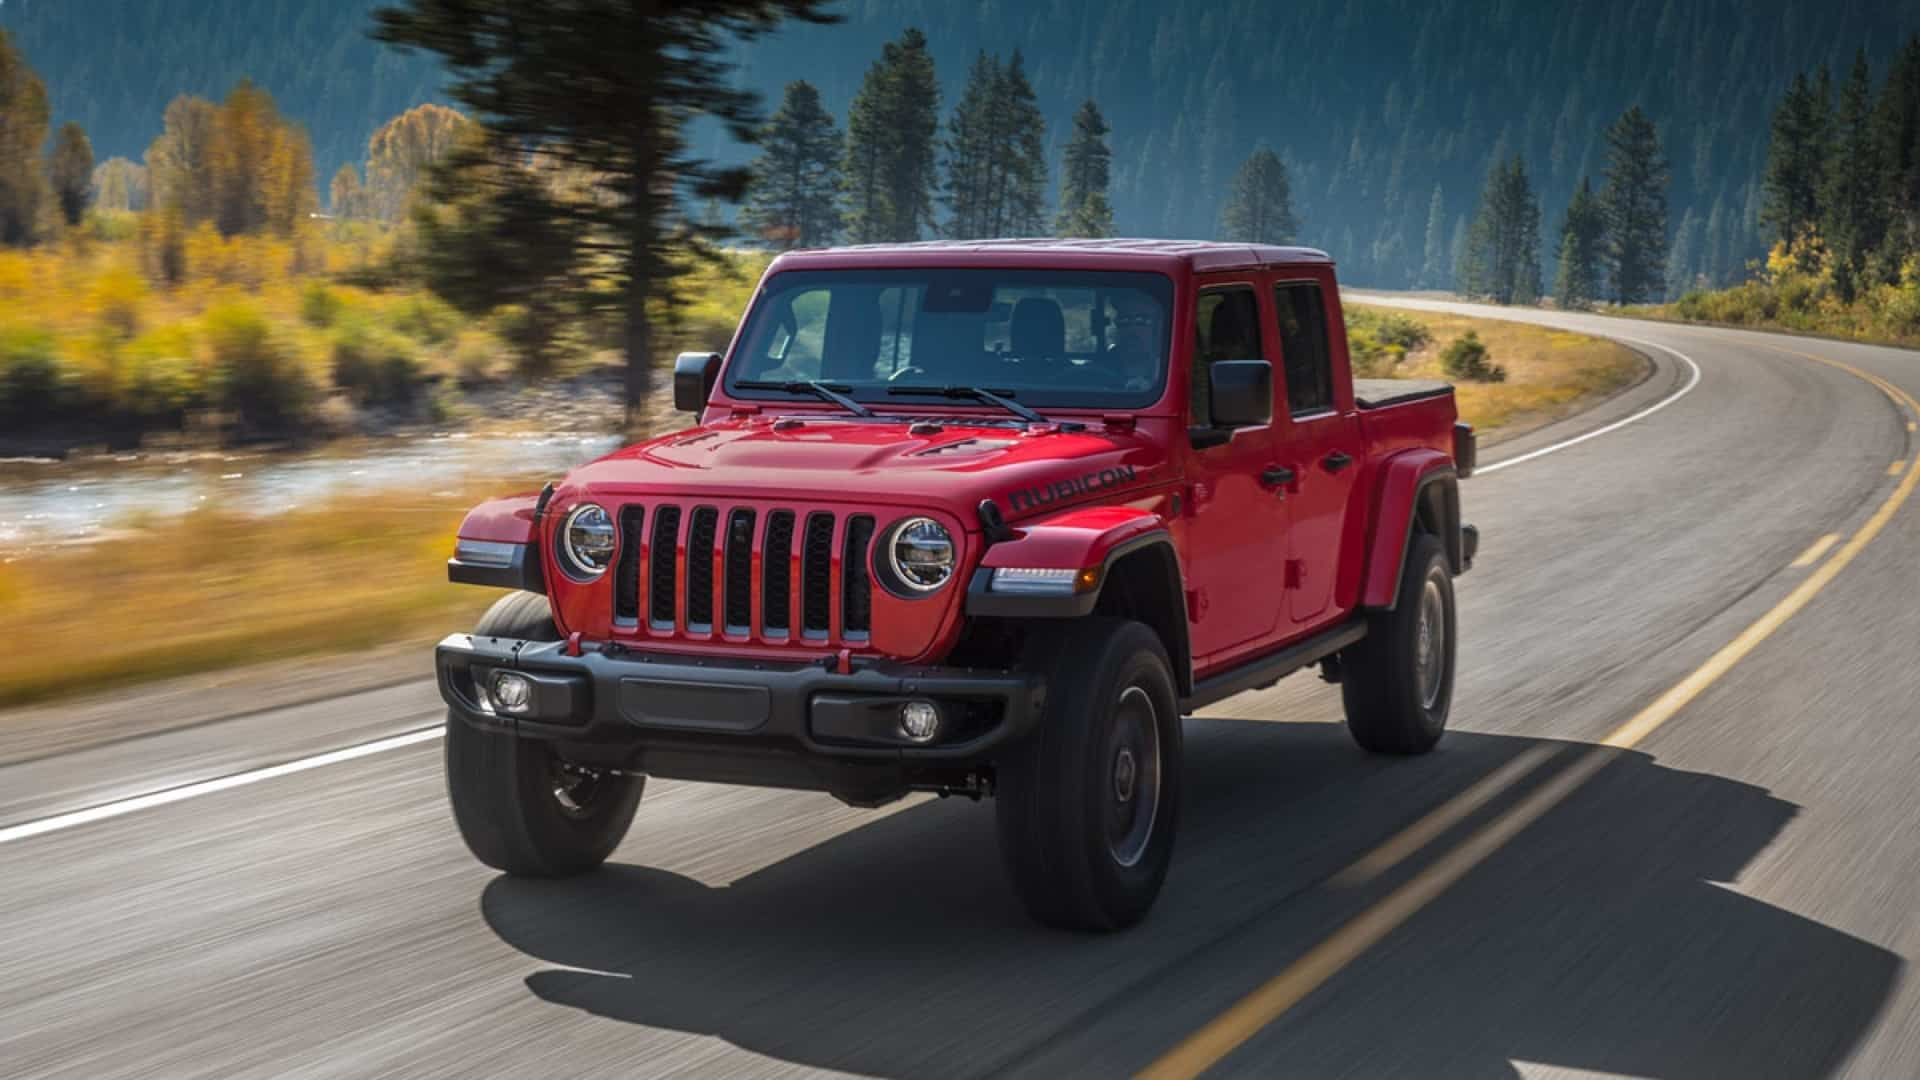 Learn about the 2020 Jeep Gladiator near Cerritos CA